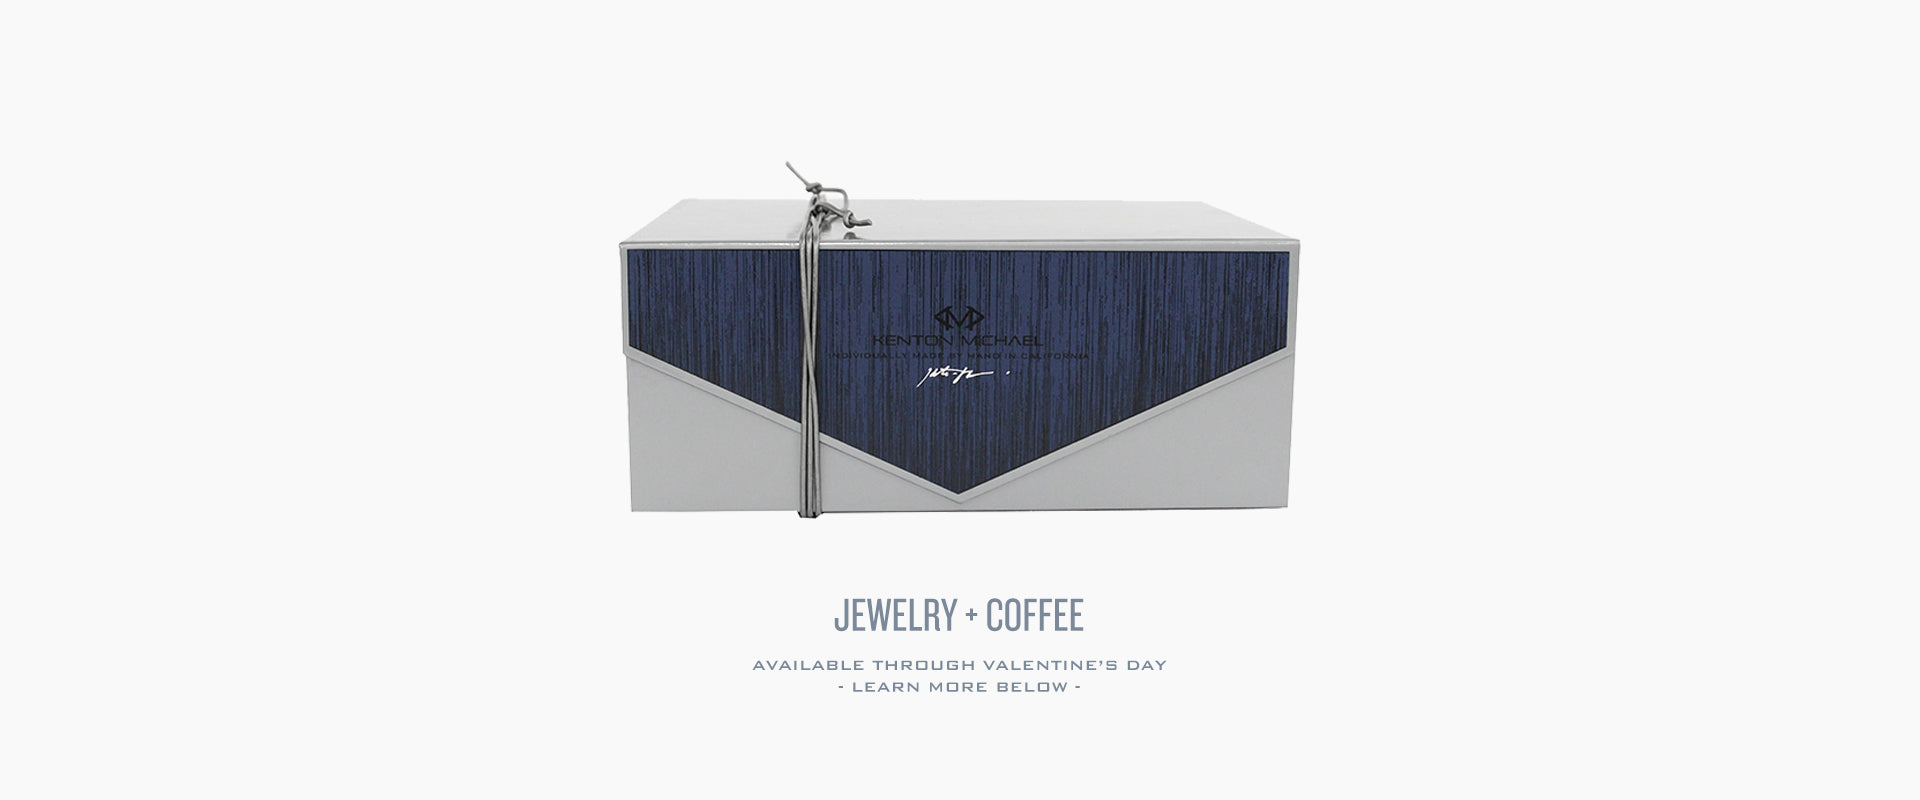 JEWELRY + COFFEE BOX